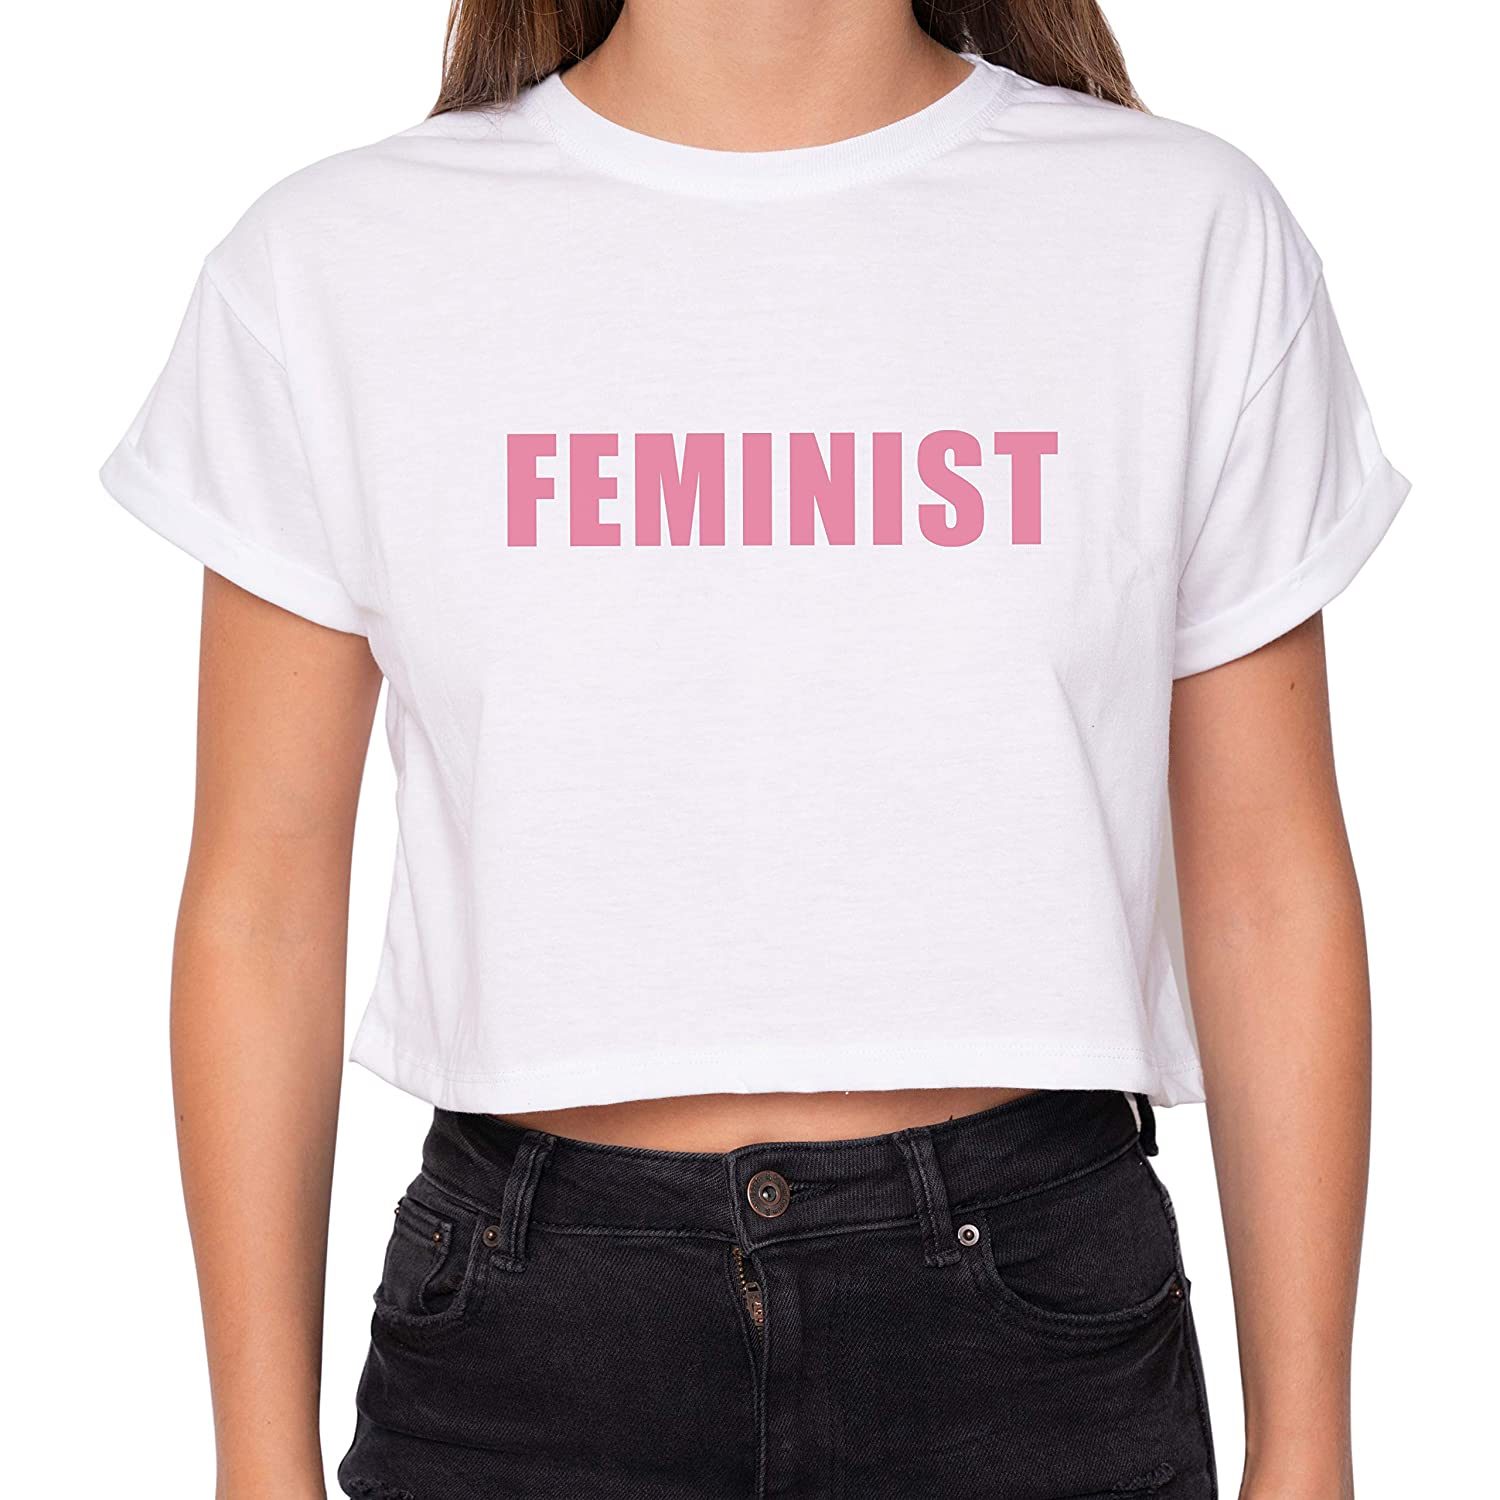 1f3bc212ae8faf Minga London Feminist Crop Top Fun Women s Tumblr at Amazon Women s  Clothing store